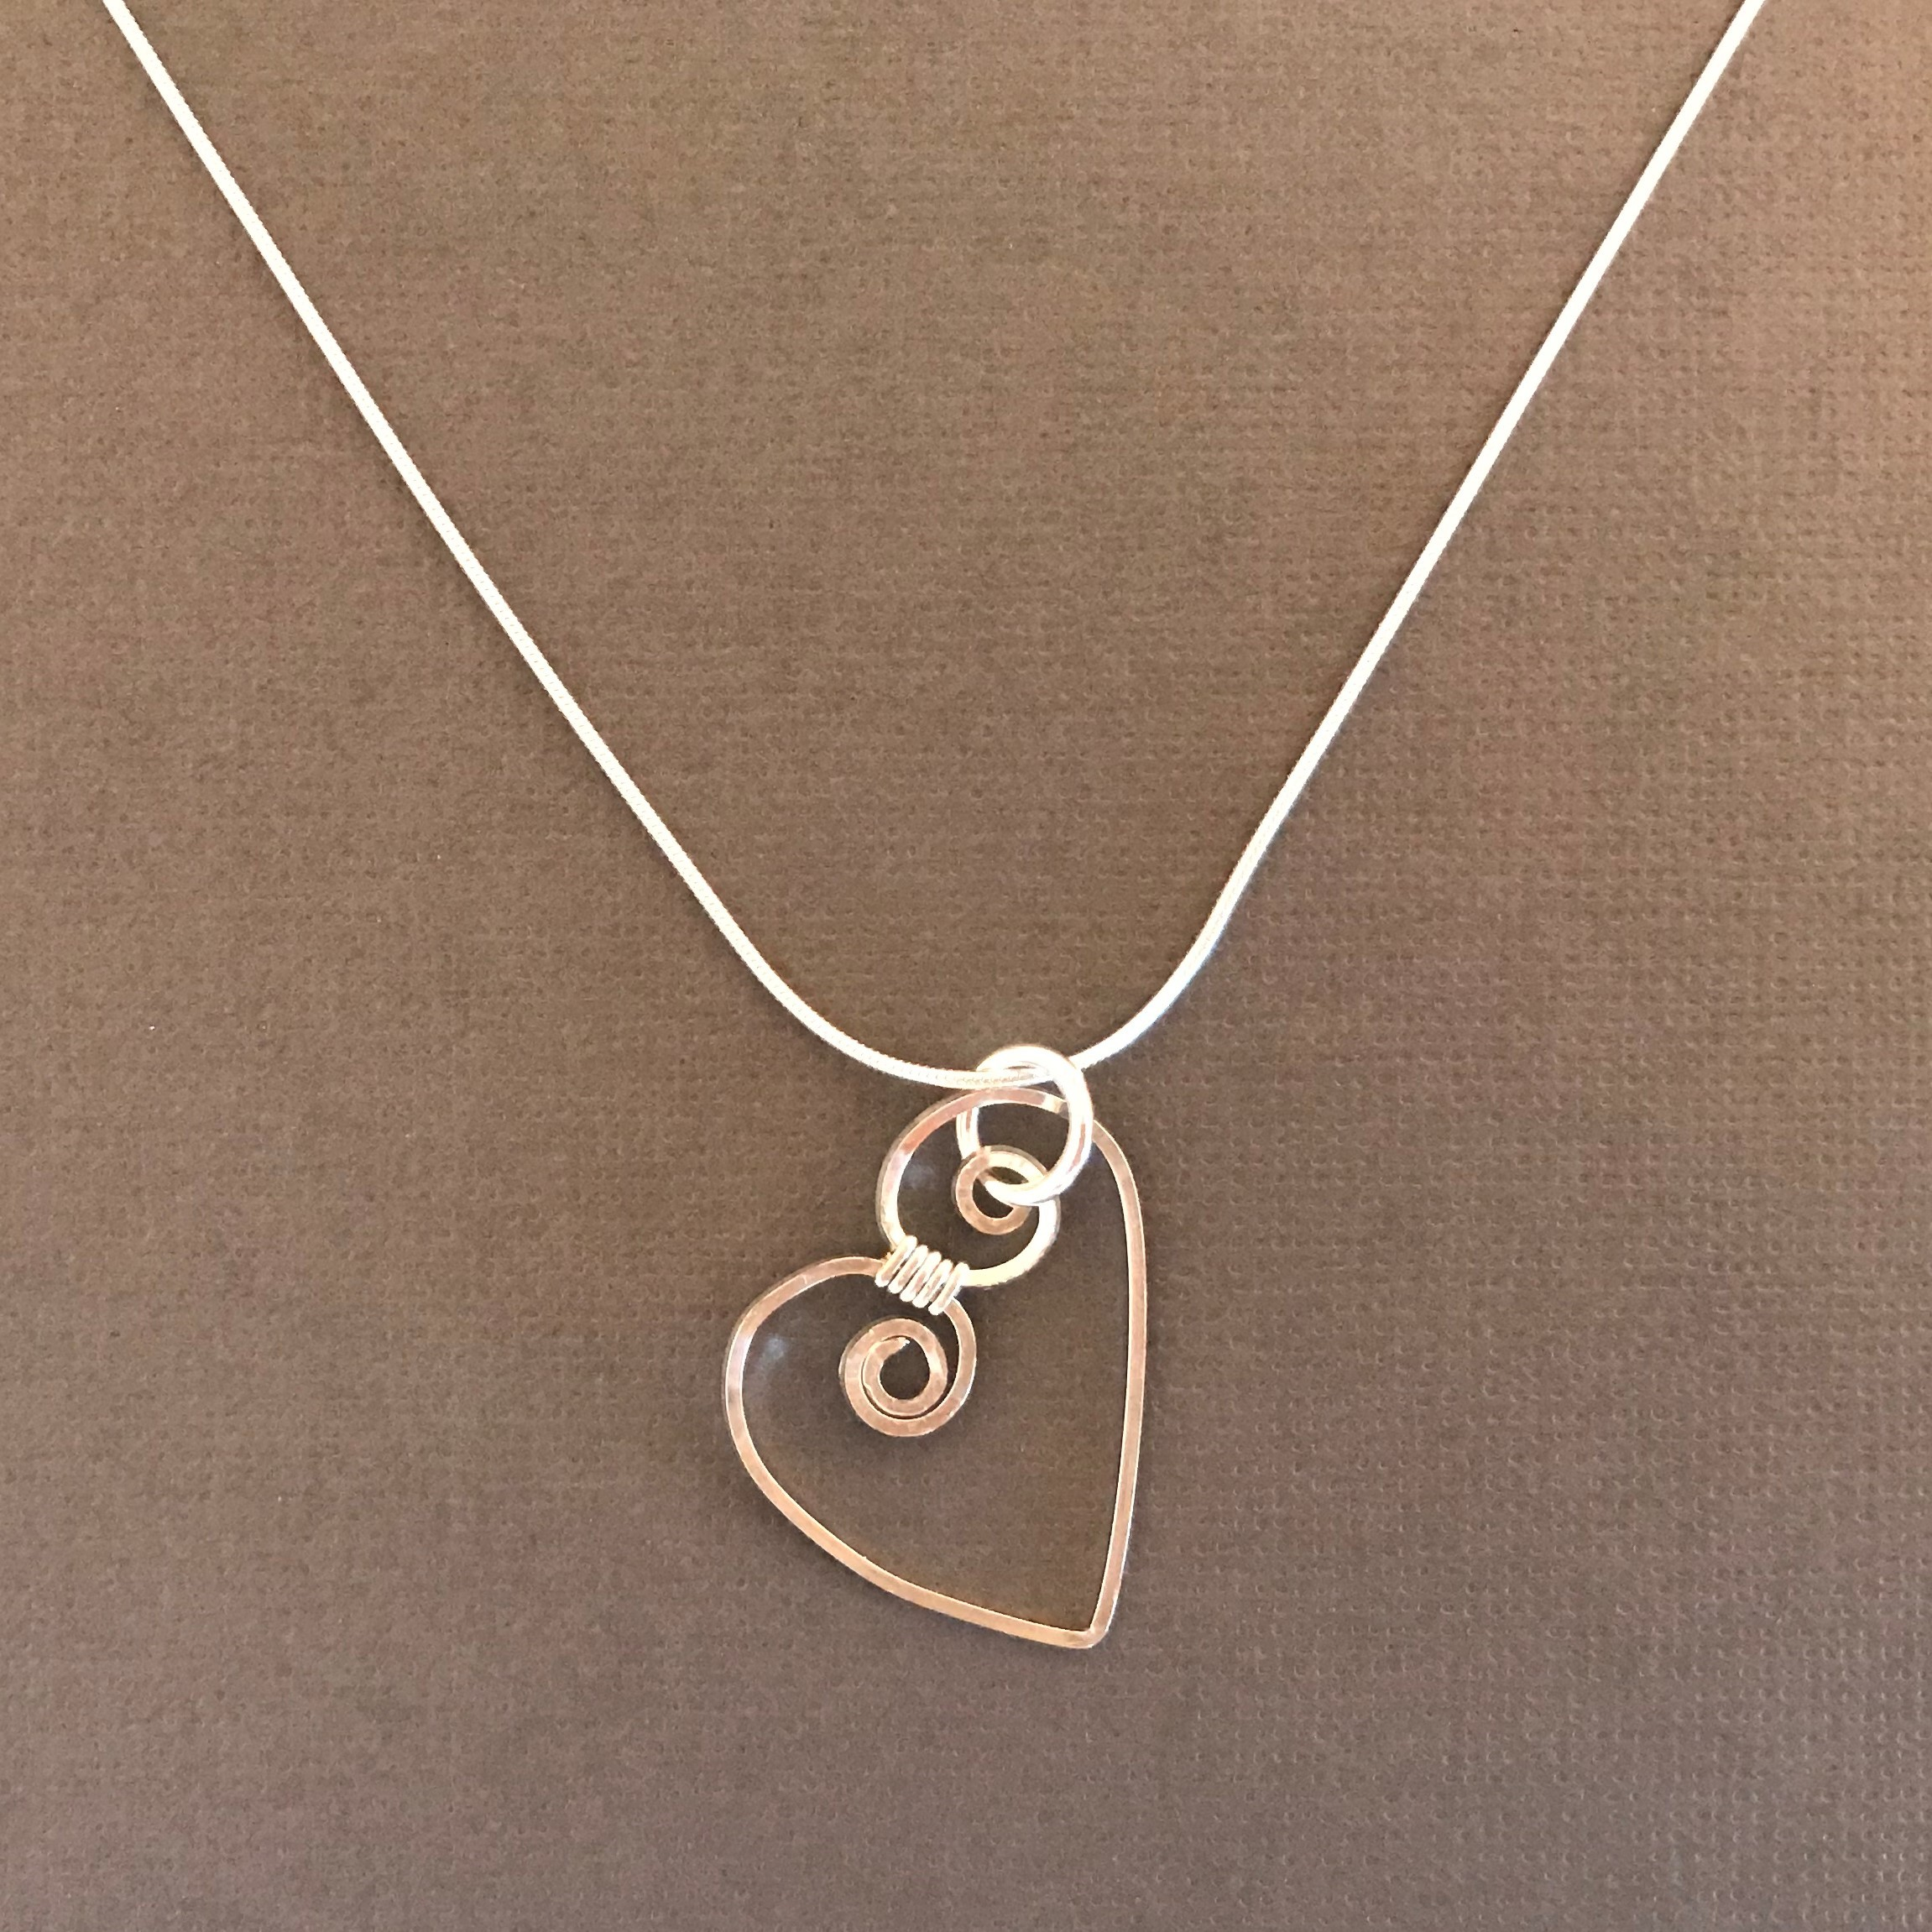 - You may also like this Mini Heart Pendant